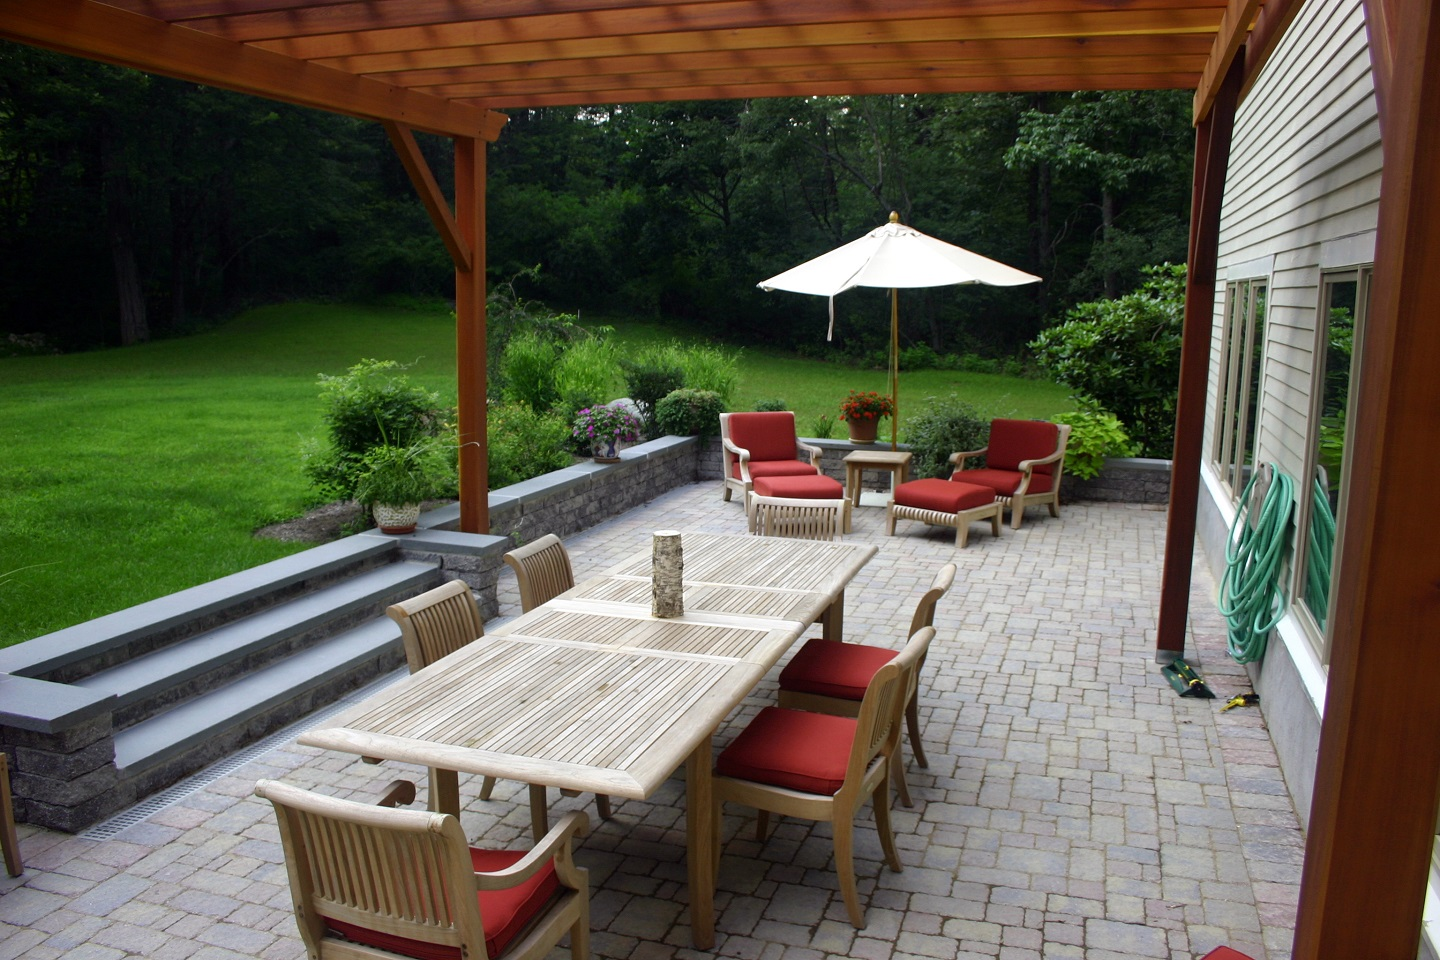 Cambridge MA bluestone patio with outdoor kitchen